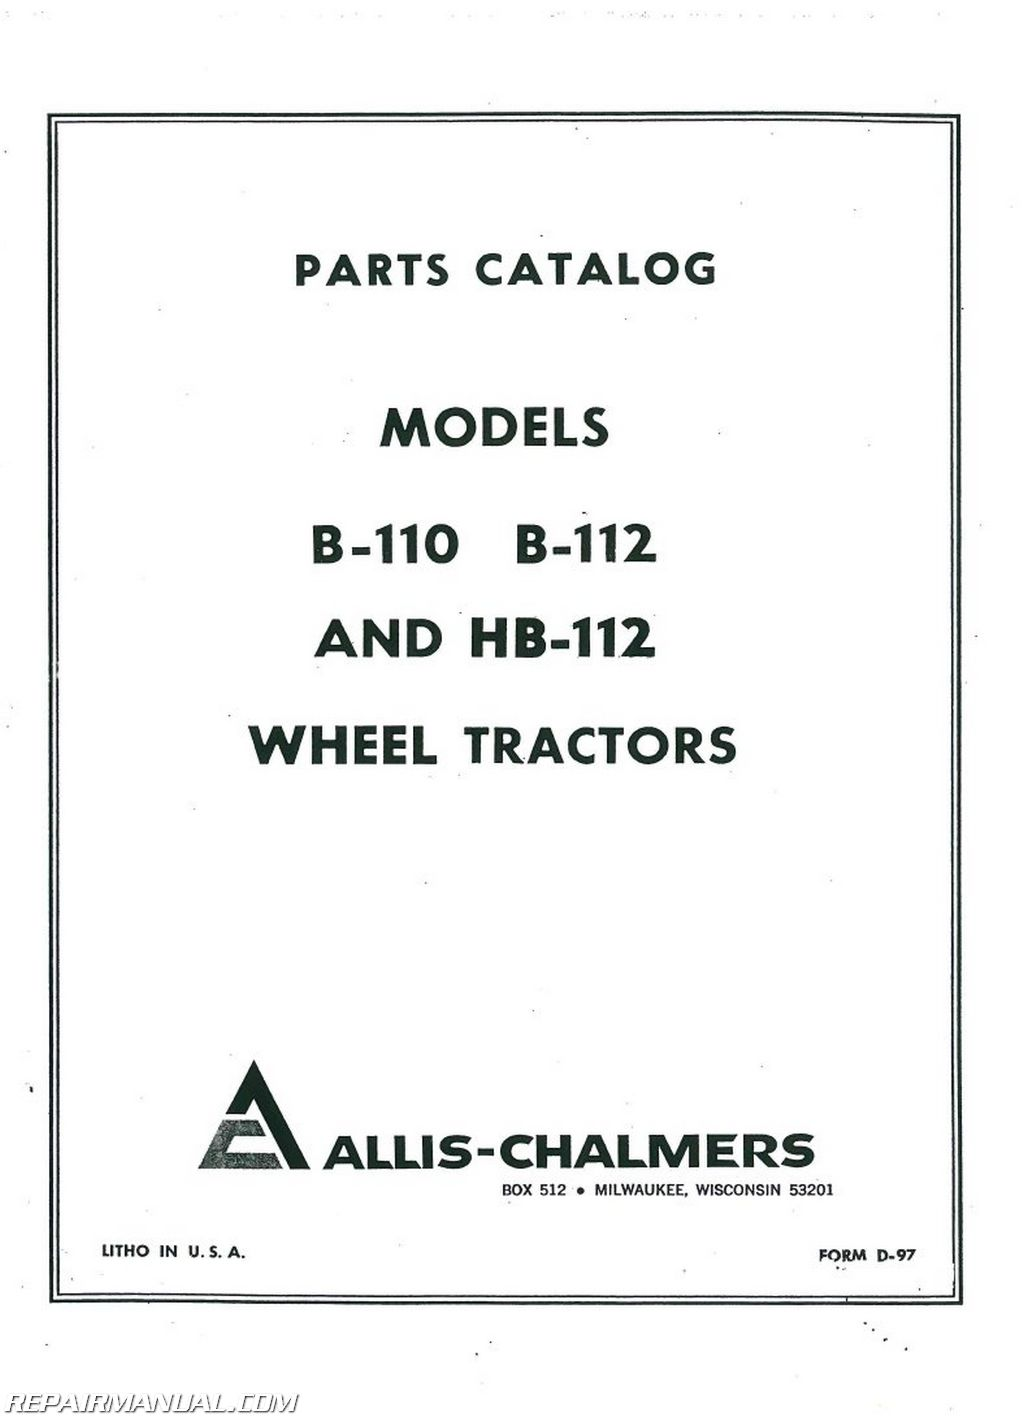 allis chalmers b110 b112 hb112 lawn garden tractor parts manual rh repairmanual com Lawn and Garden Stores Bomberger's Lawn Garden